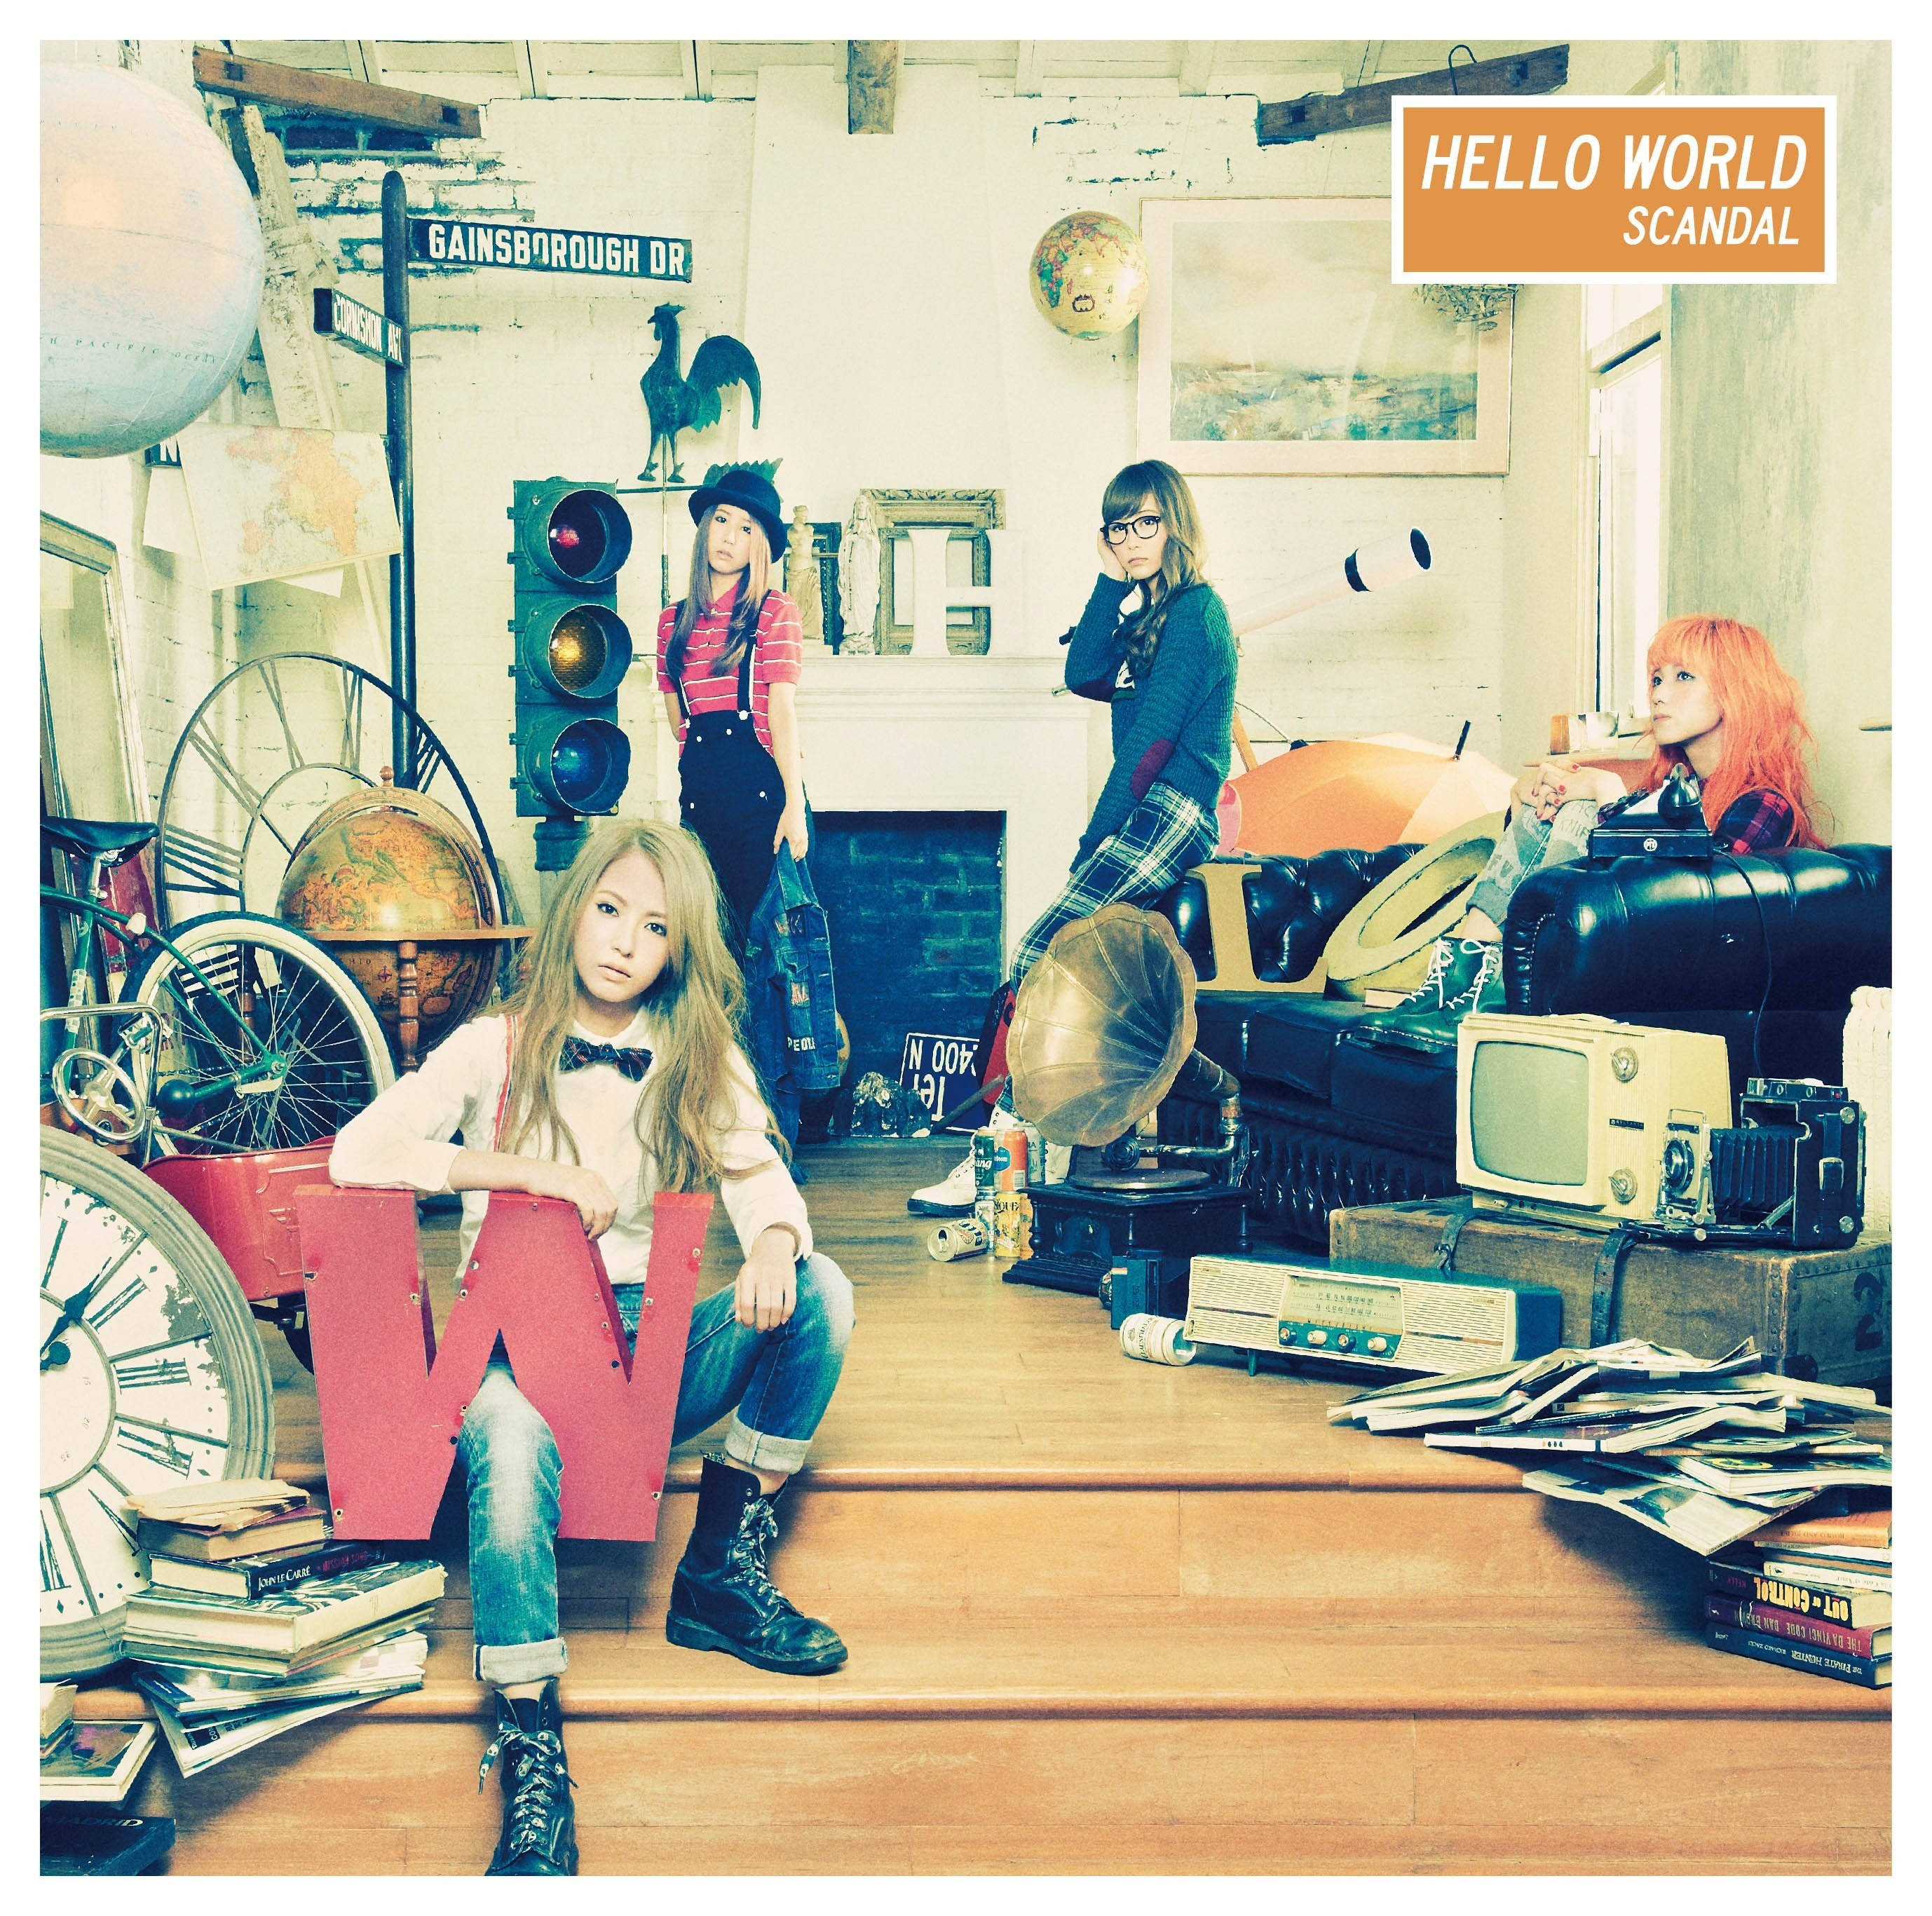 SCANDAL – HELLO WORLD [FLAC / 24bit Lossless / WEB] [2014.12.03]